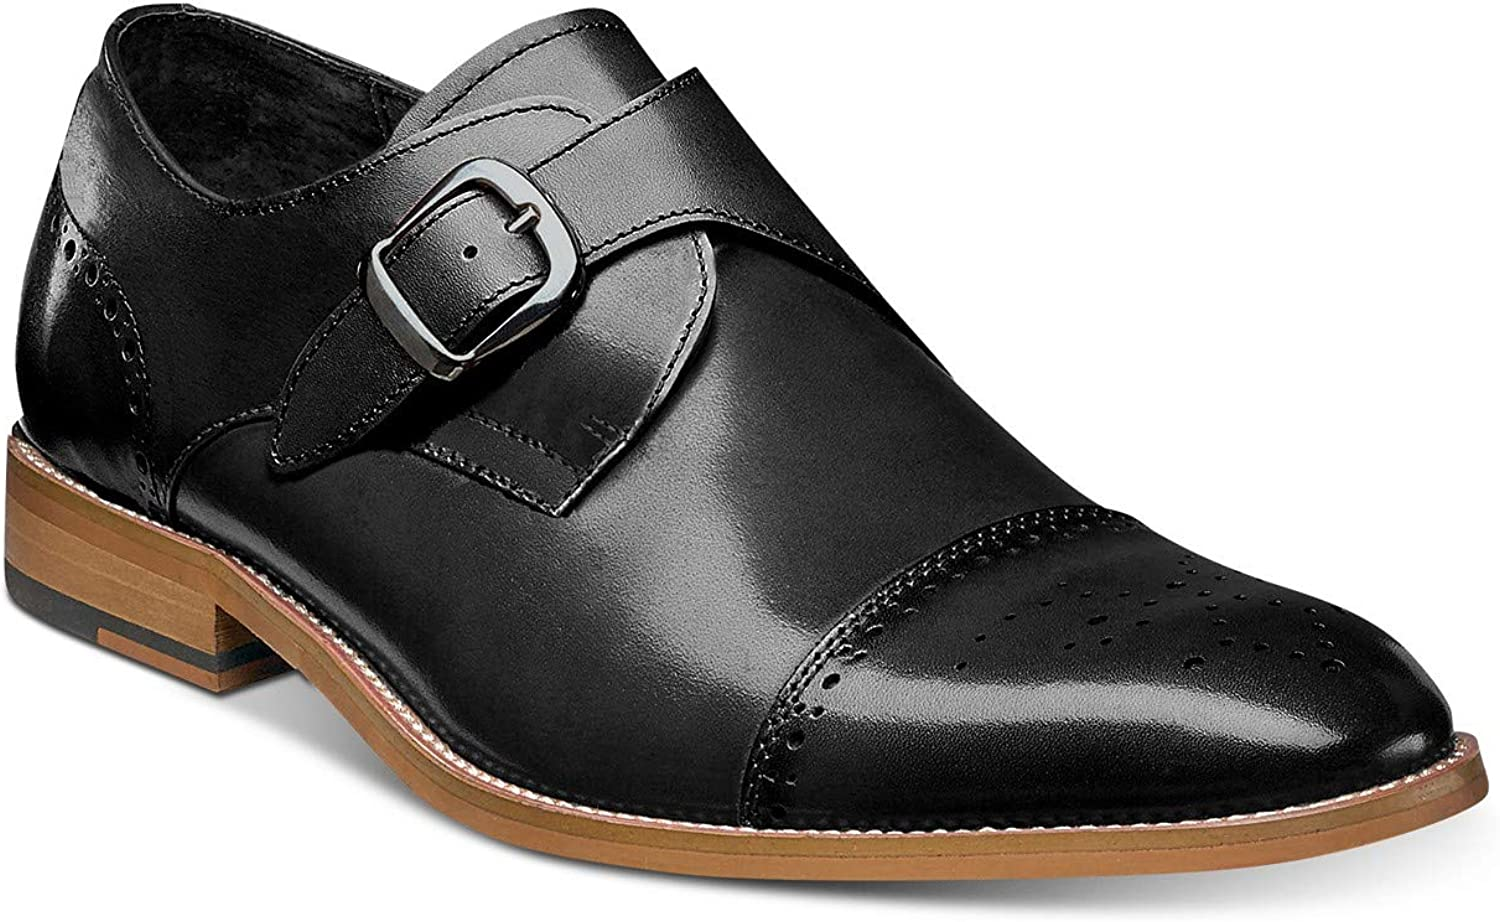 Stacy Adams Mens Duncan Leather Closed Toe Slip On shoes